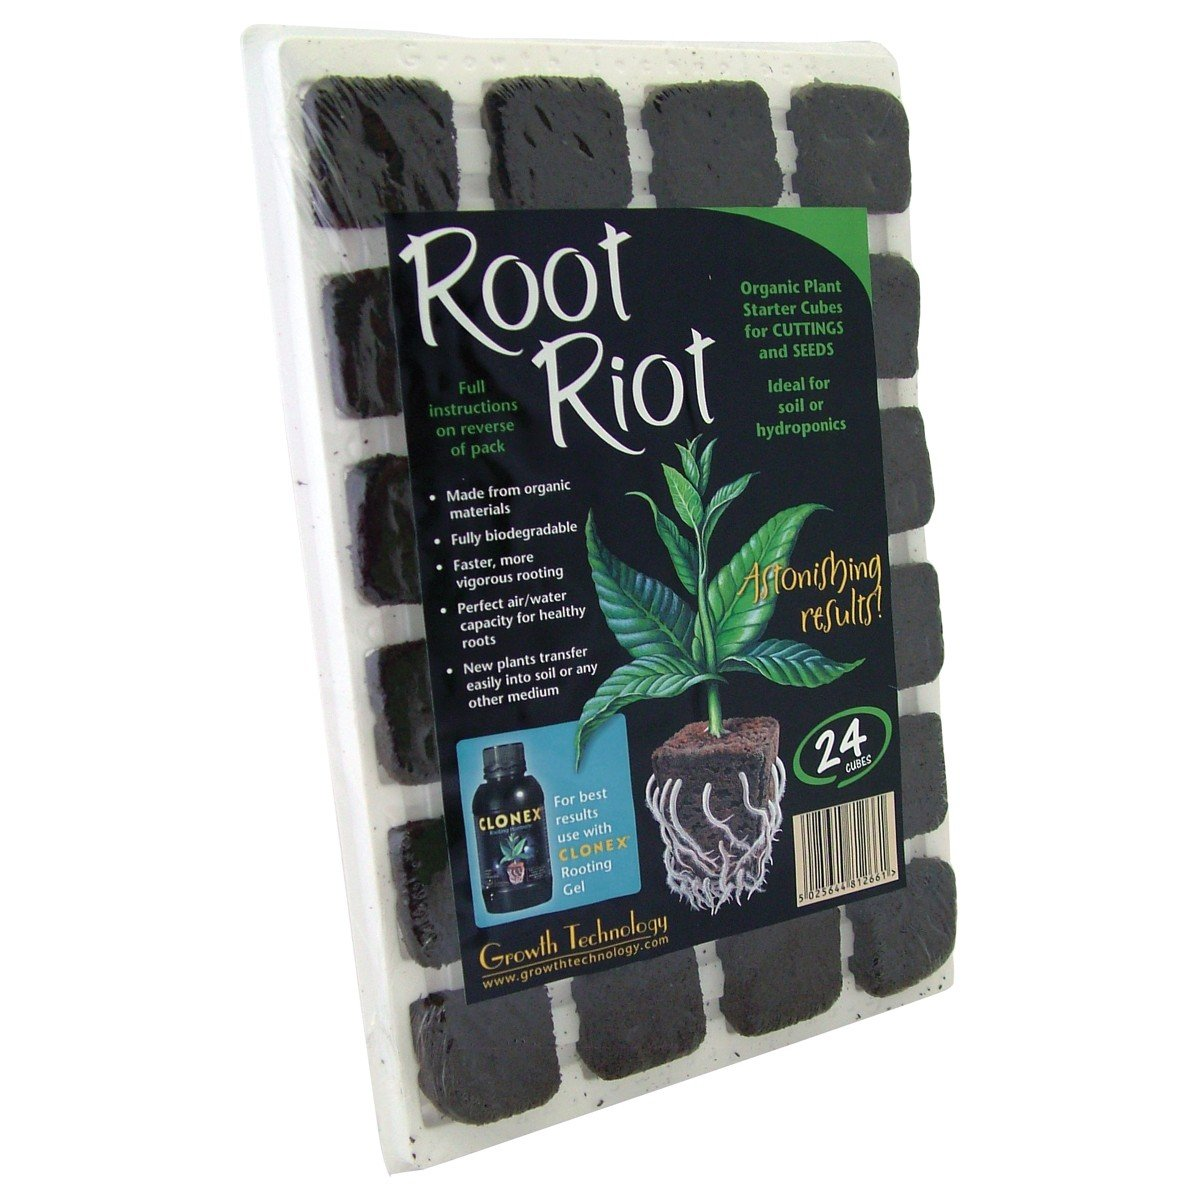 ROOT RIOT TRAY 24 CUBES GROWTH TECHNOLOGY